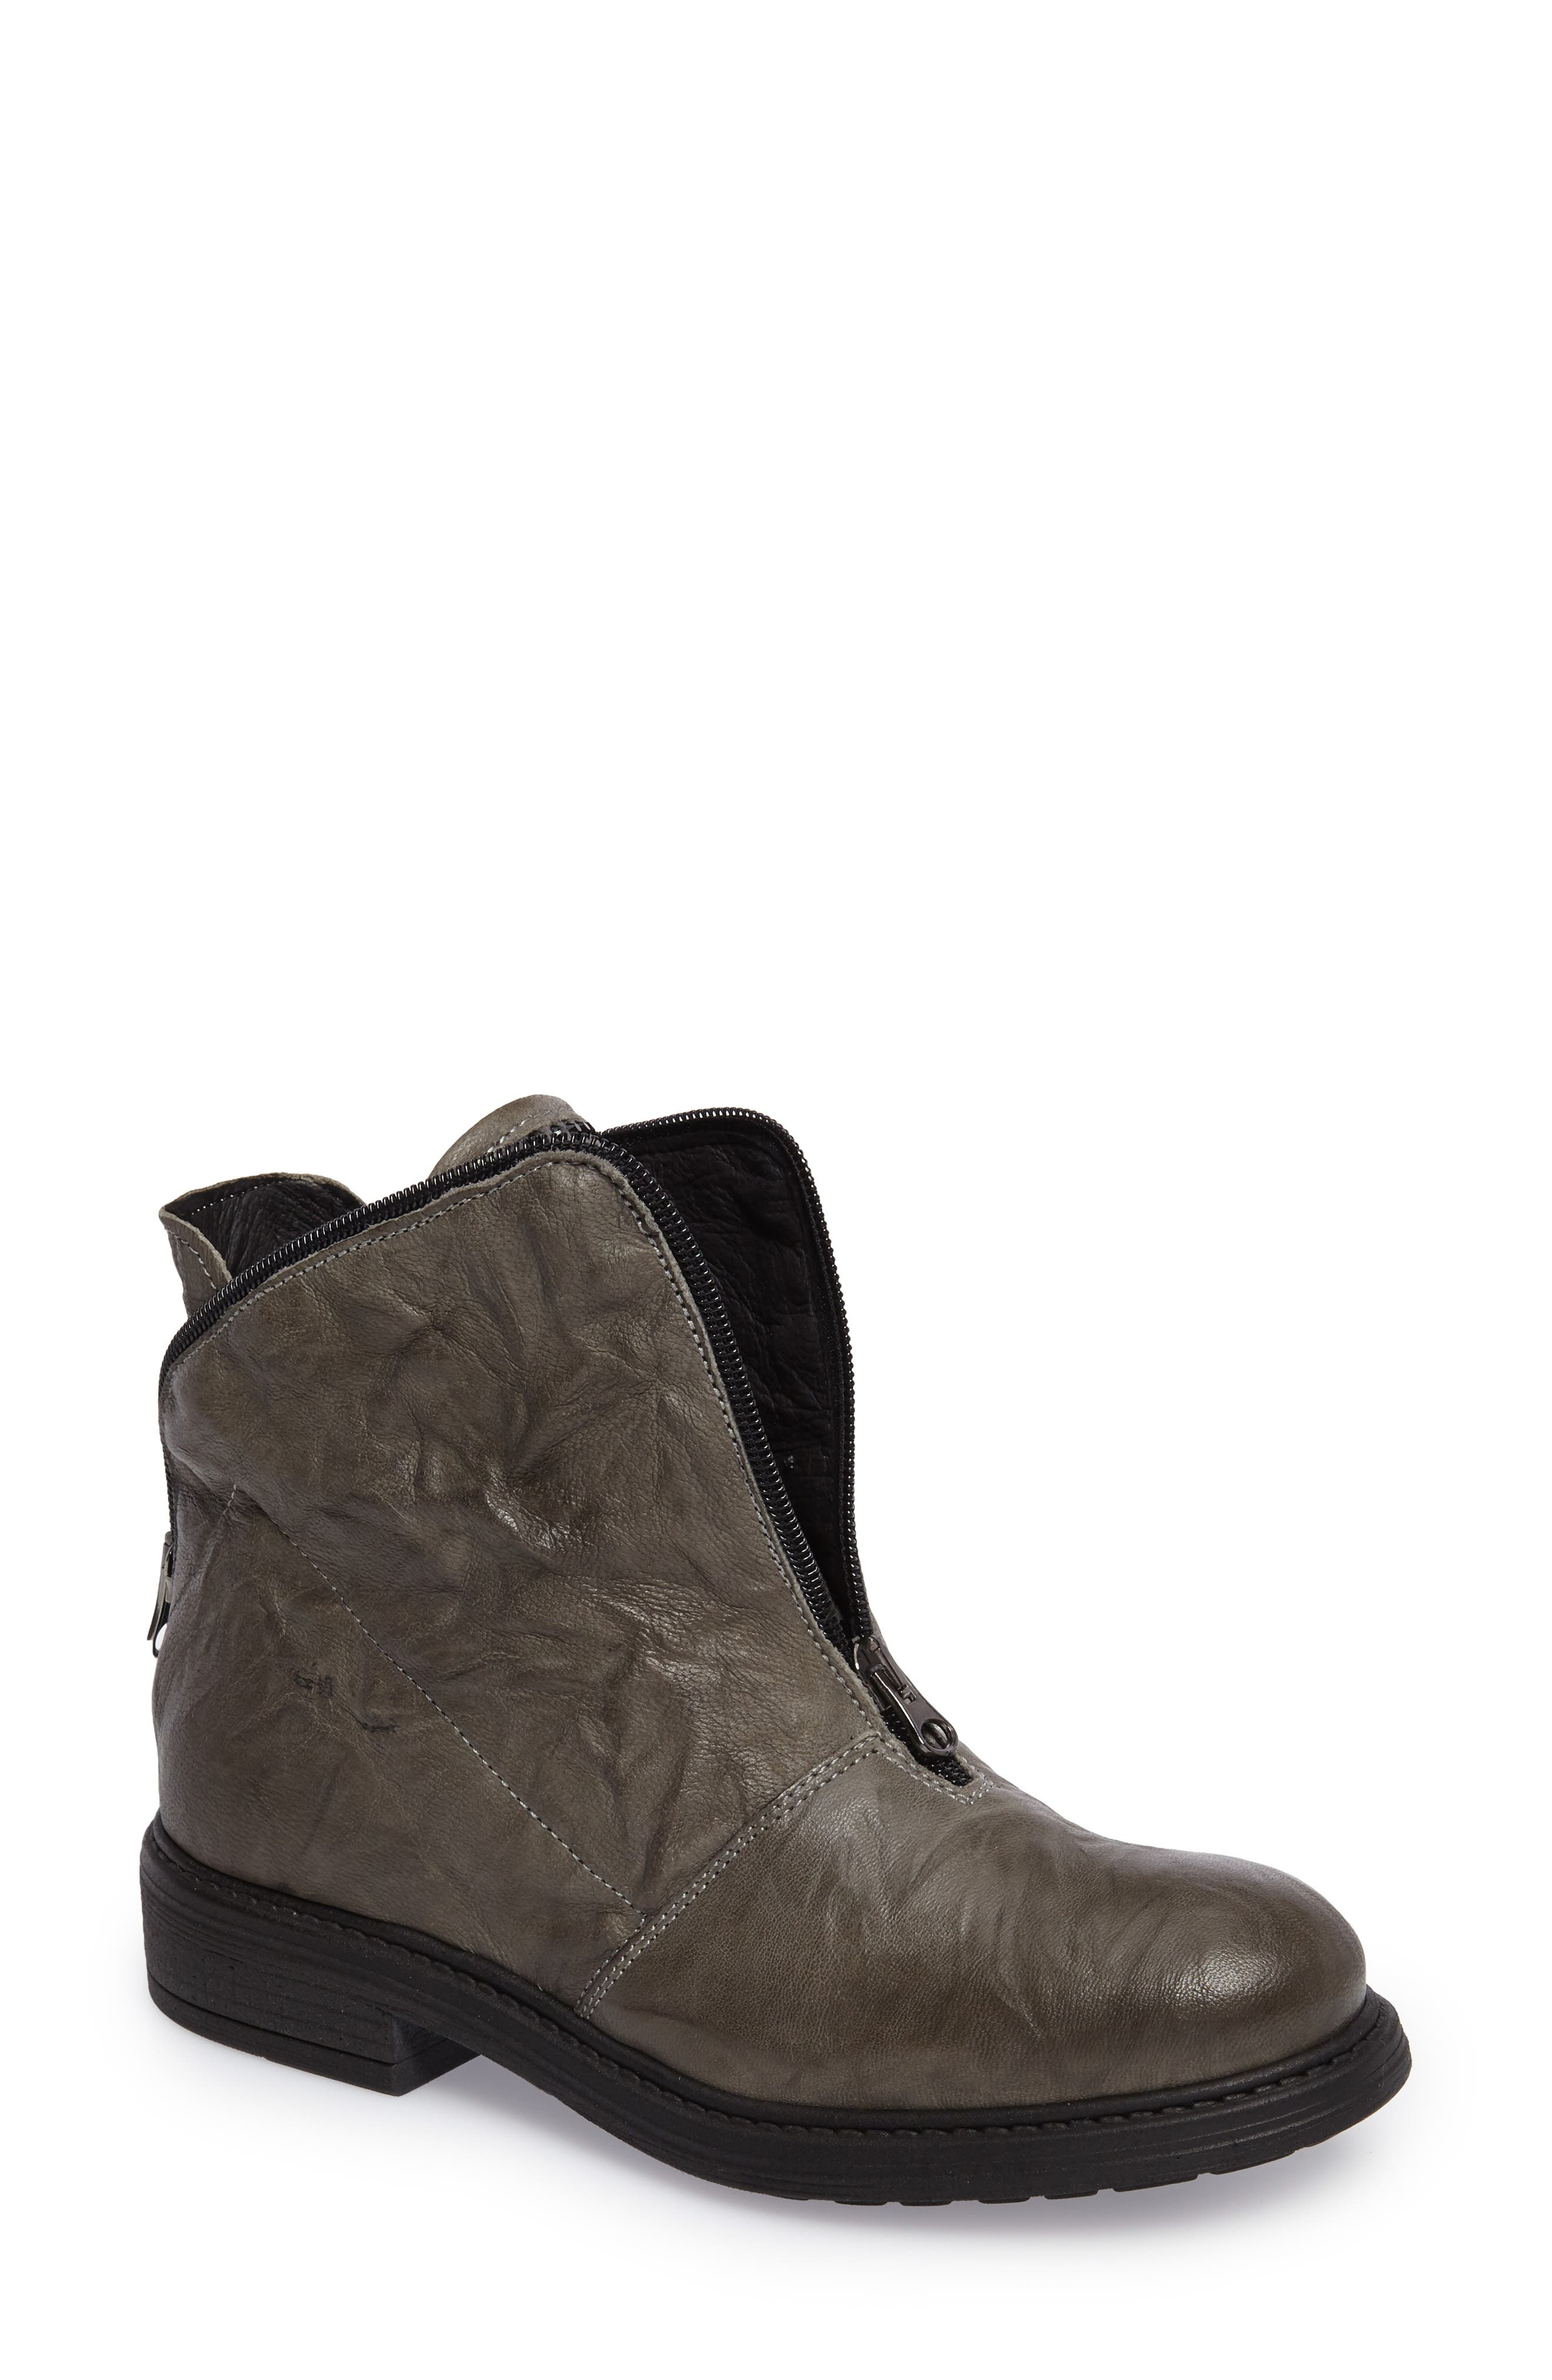 Sheridan Bling Bootie,                             Main thumbnail 1, color,                             Charcoal Leather